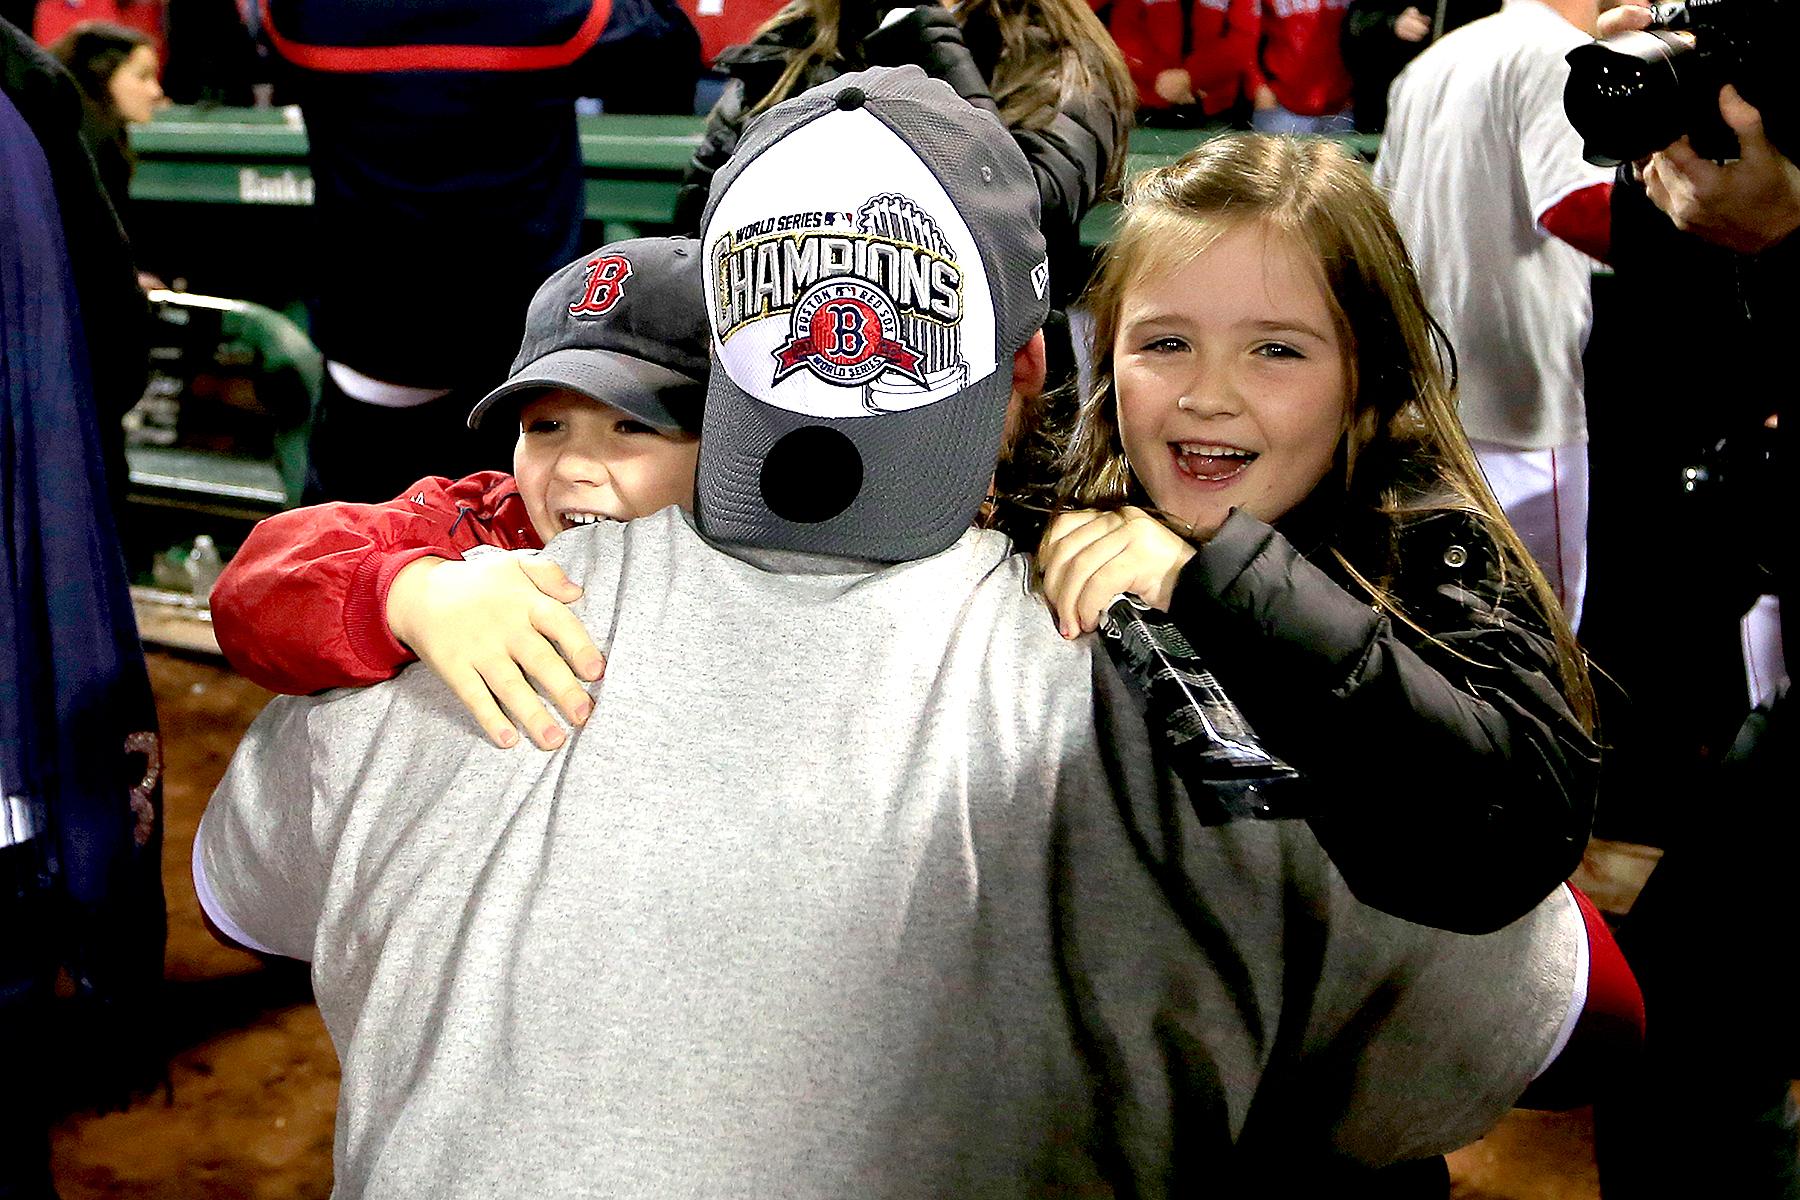 David Ross #3 of the Boston Red Sox hugs his children Landri (R) and Cole (L) following a 6-1 victory over the St. Louis Cardinals in Game Six of the 2013 World Series at Fenway Park on October 30, 2013 in Boston, Massachusetts.